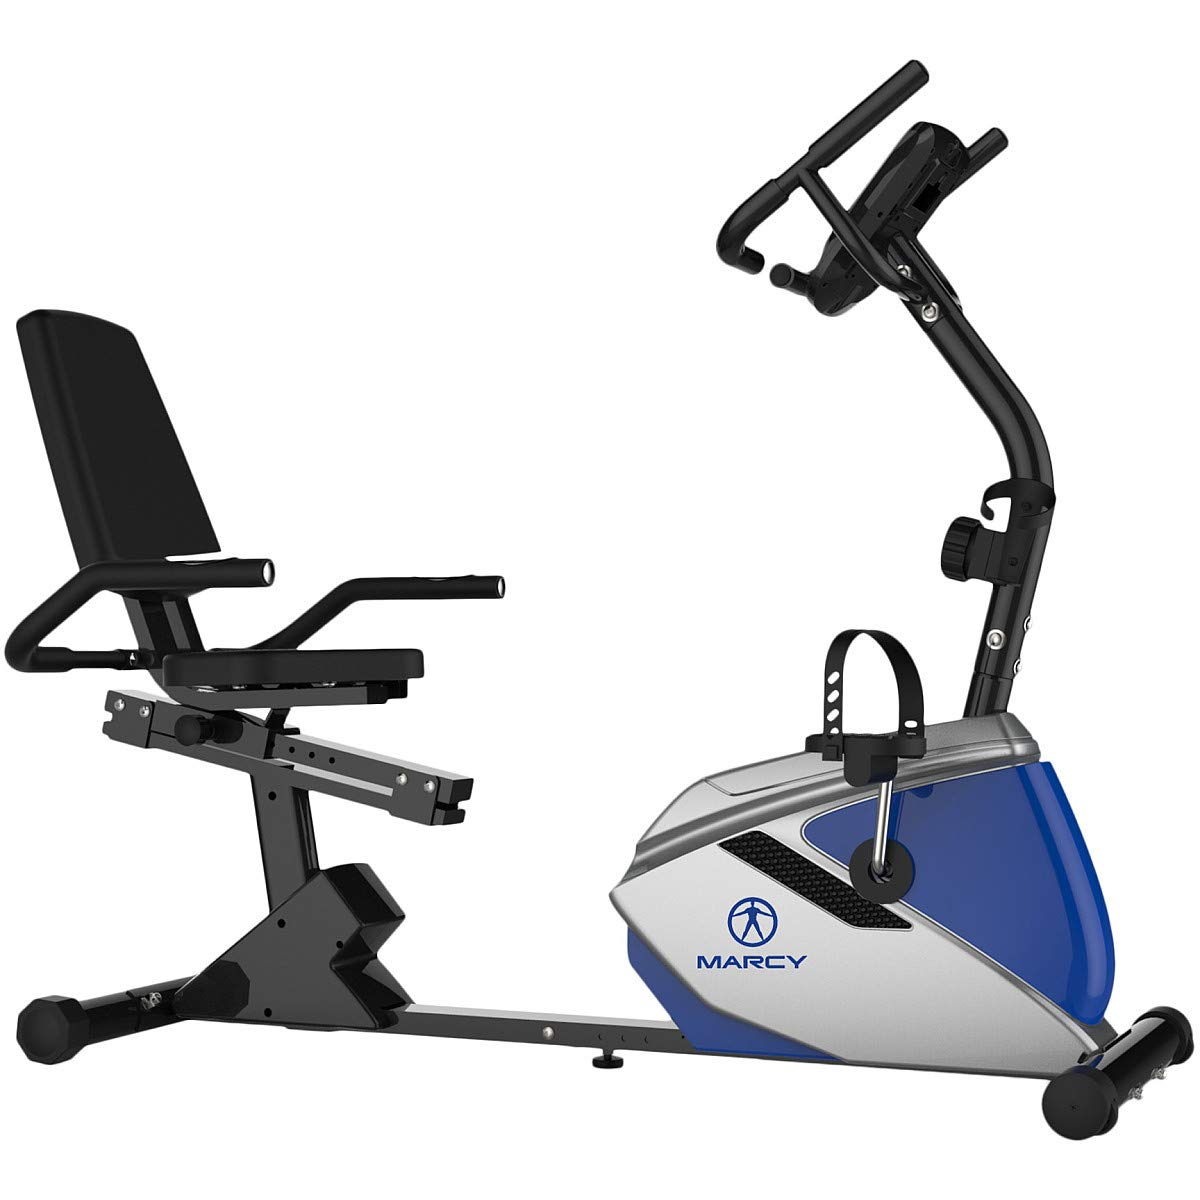 Marcy Magnetic Recumbent Bike with Pulse and 8 Resistance Levels for Cardio and Strength Training ME-1019R, One Size